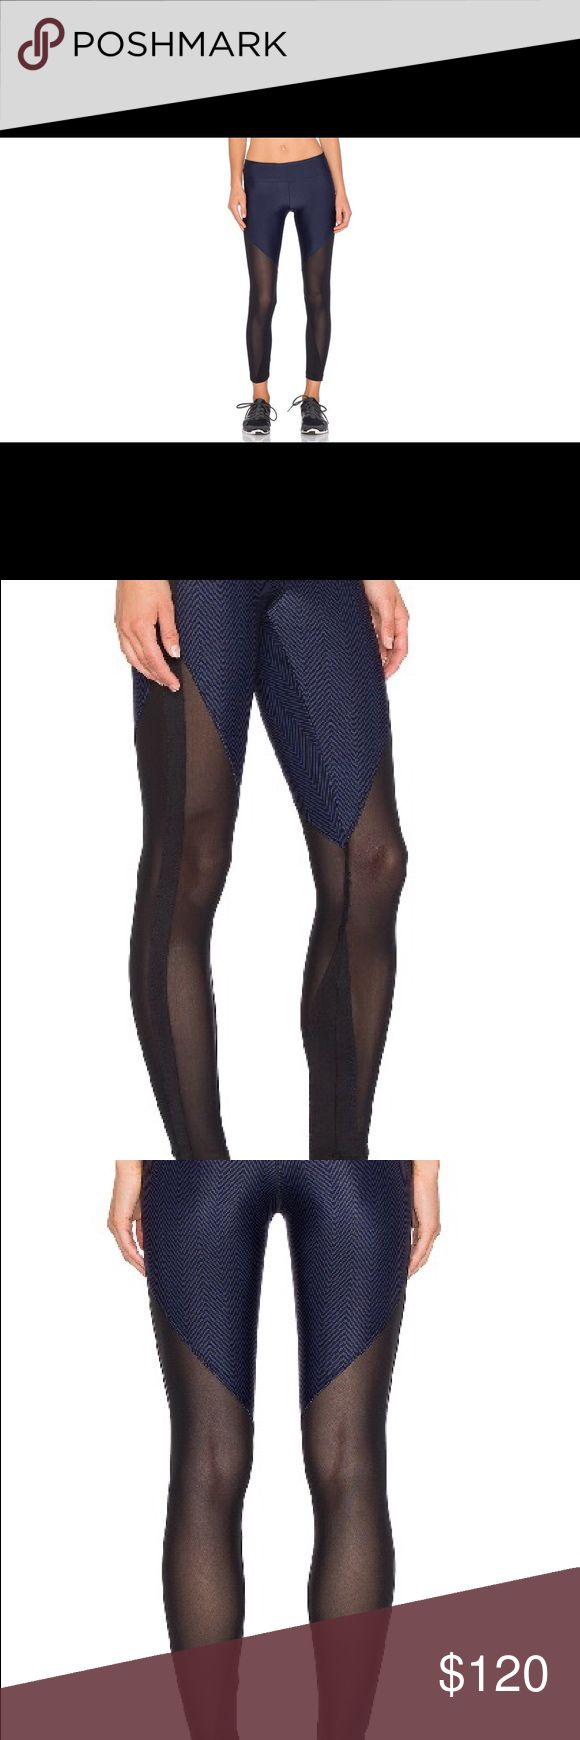 📦 NWOT Koral Gi Lucent Legging Navy and black mesh leggings size M. 📦 I will pay for the shipping on this item. Bundle this by itself and I can make an offer to take that out. Koral Pants Leggings